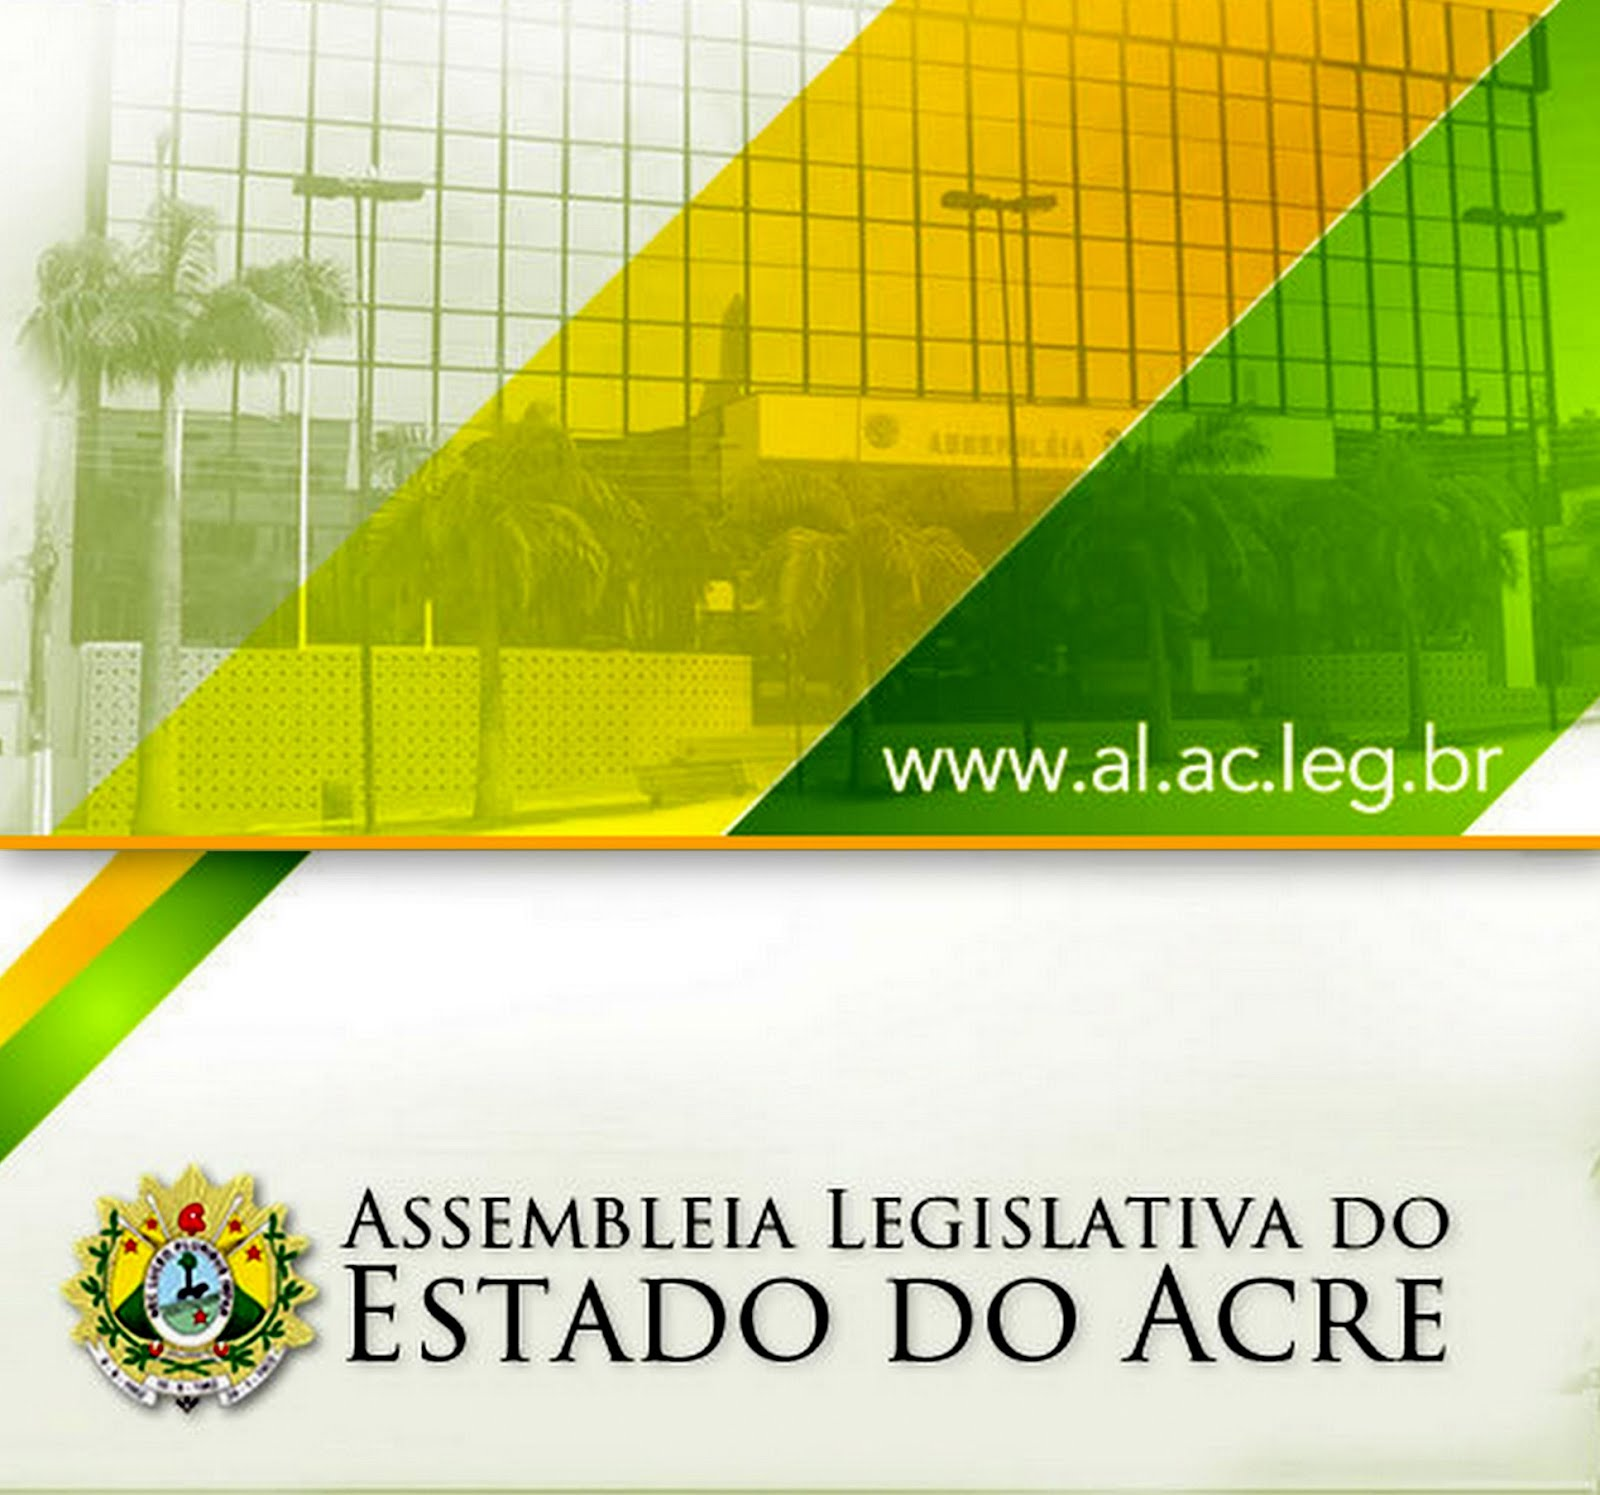 Assembléia Legislativa do Acre